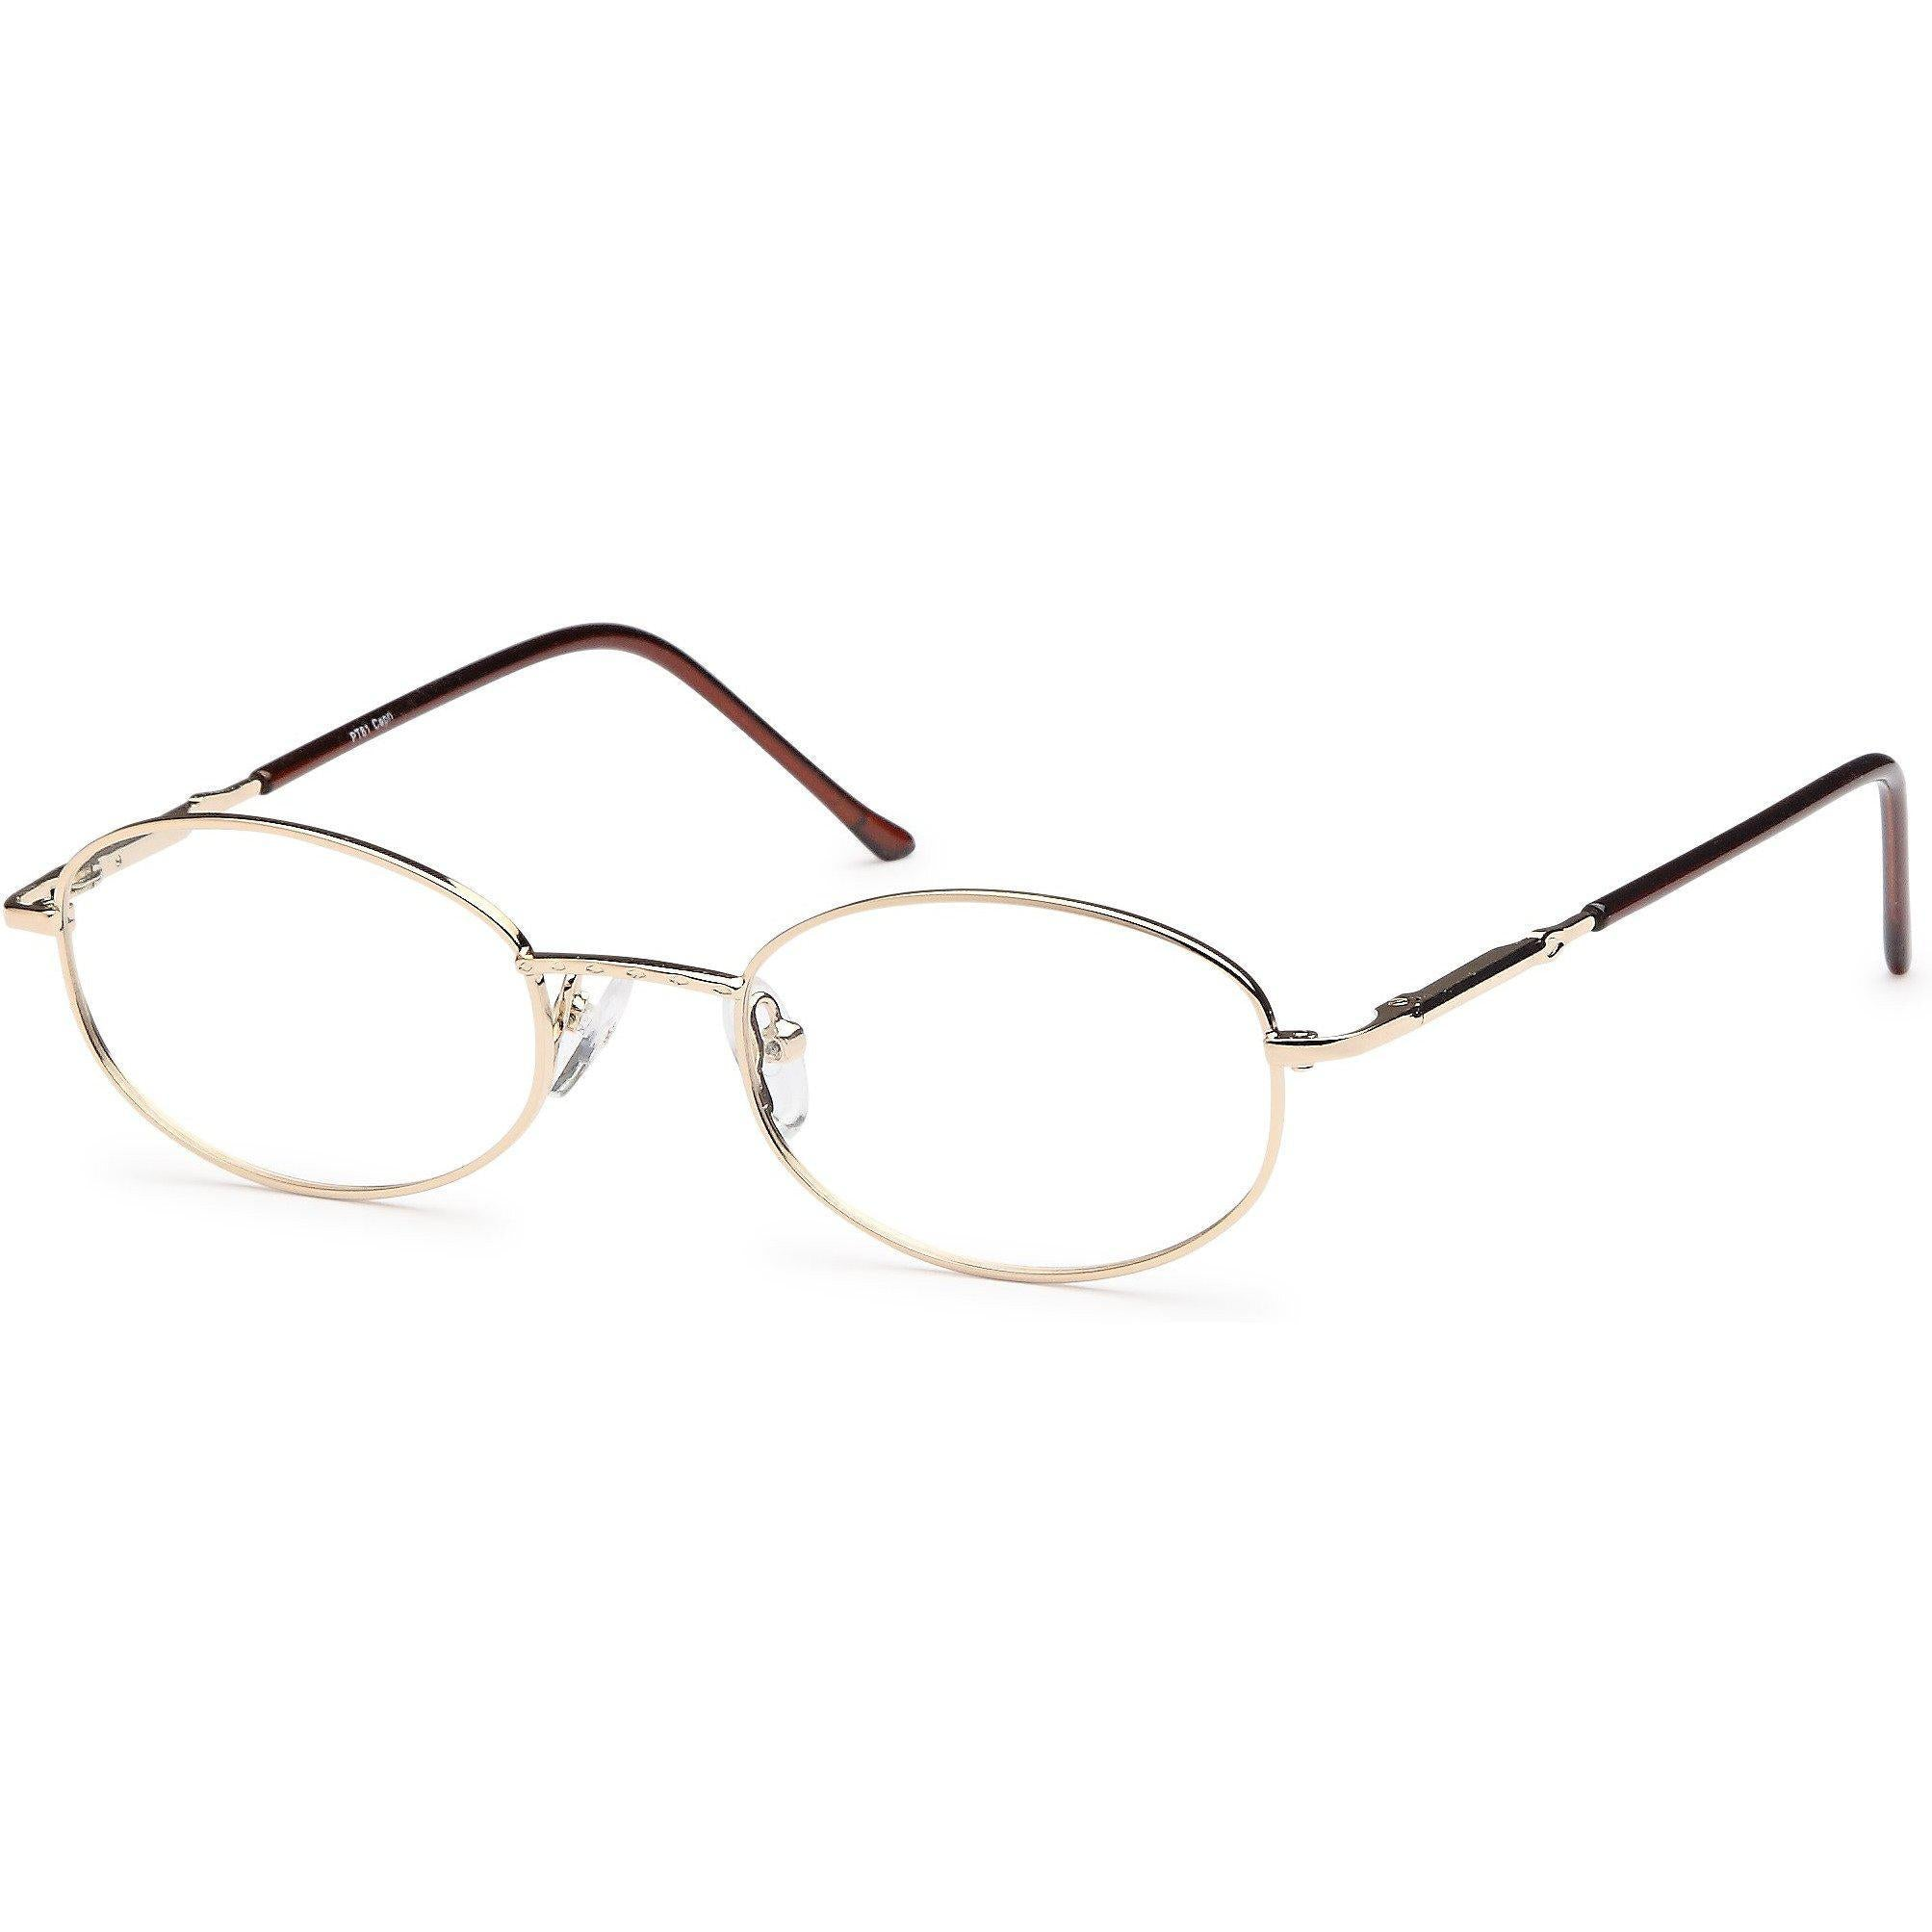 Appletree Prescription Glasses PT 61 Eyeglasses Frame